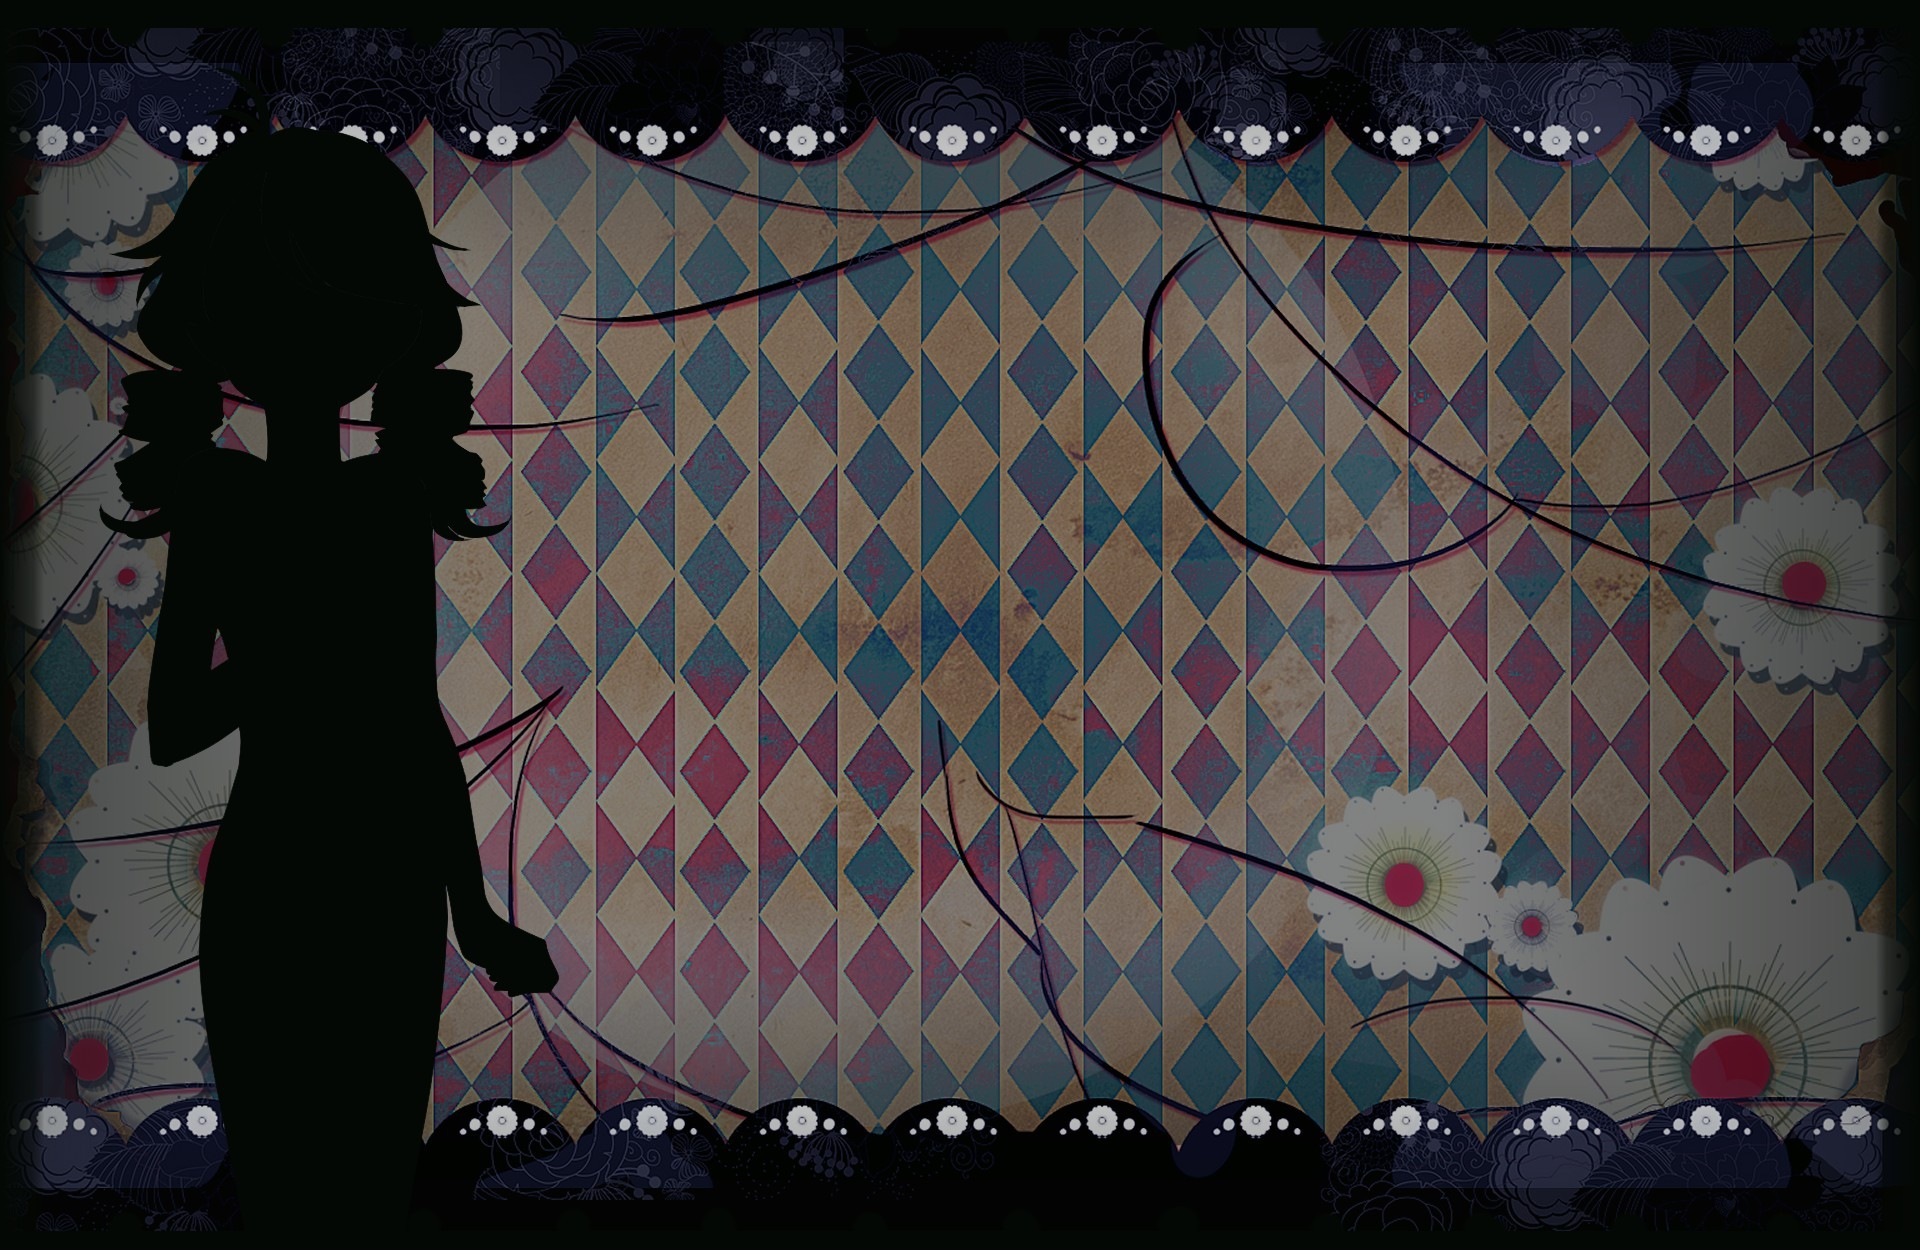 Long Live The Queen Background Pattern Silhouette.jpg